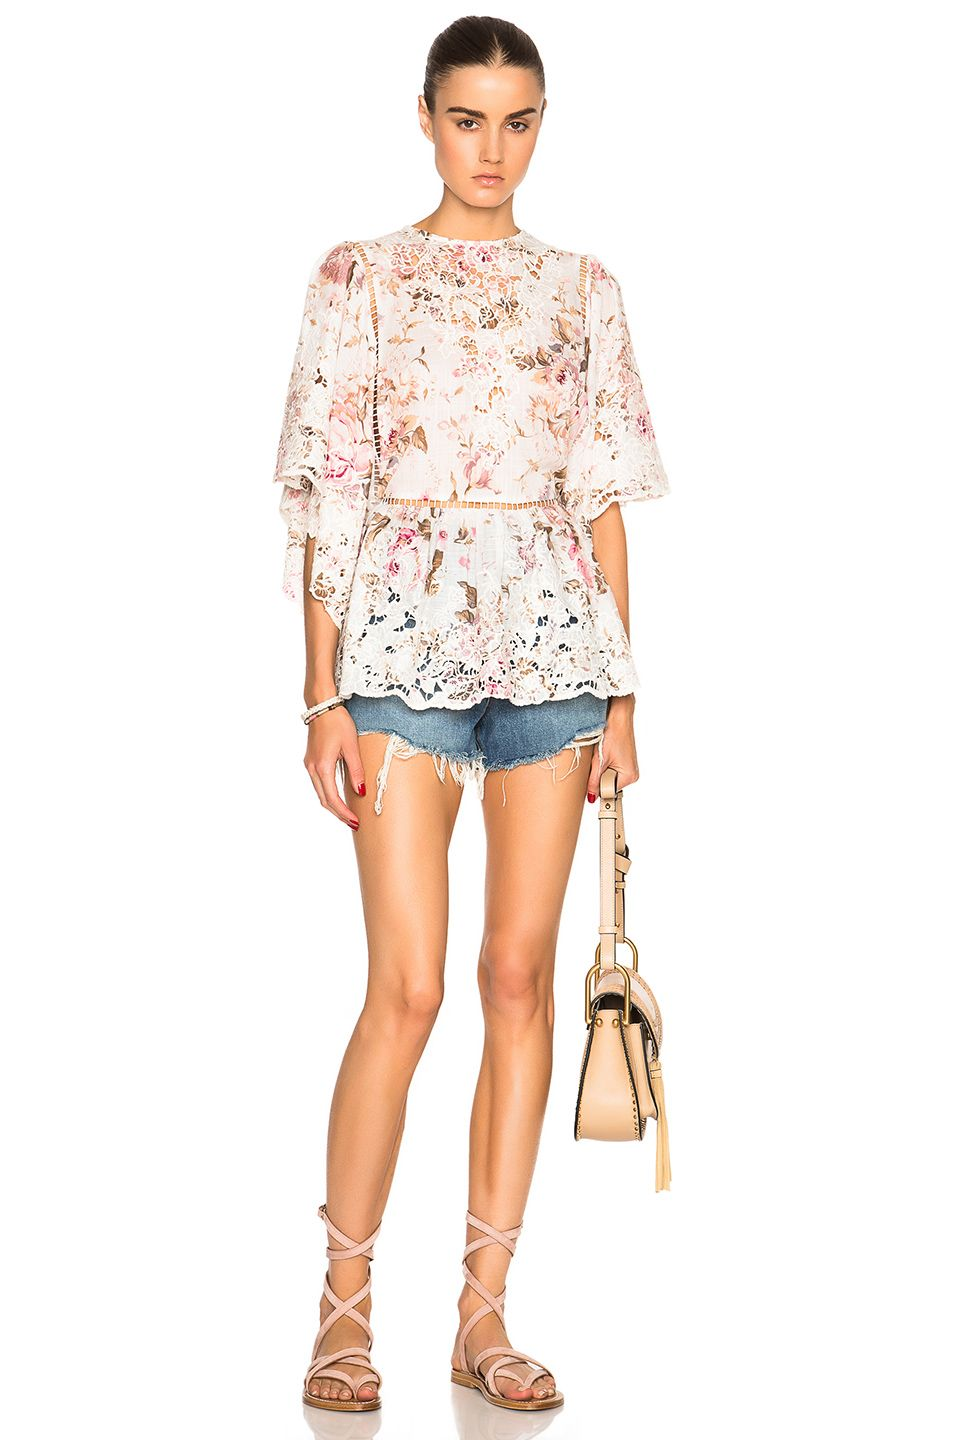 84f88146cc Image 5 of Zimmermann Eden Embroidered Top in Floral Embroidery ...